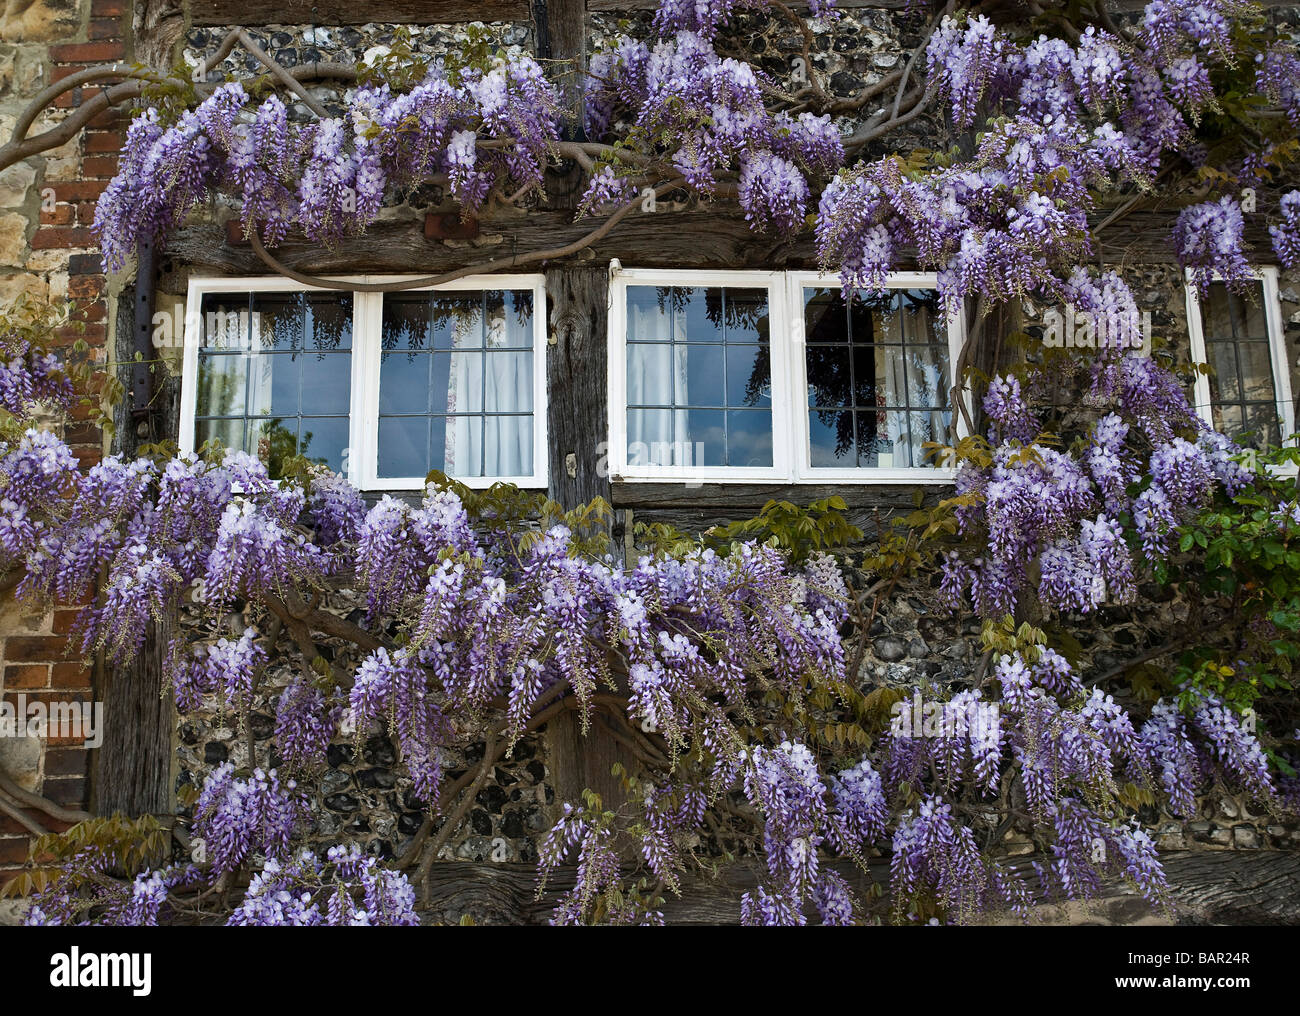 Wisteria Growing on a Country Cottage - Stock Image